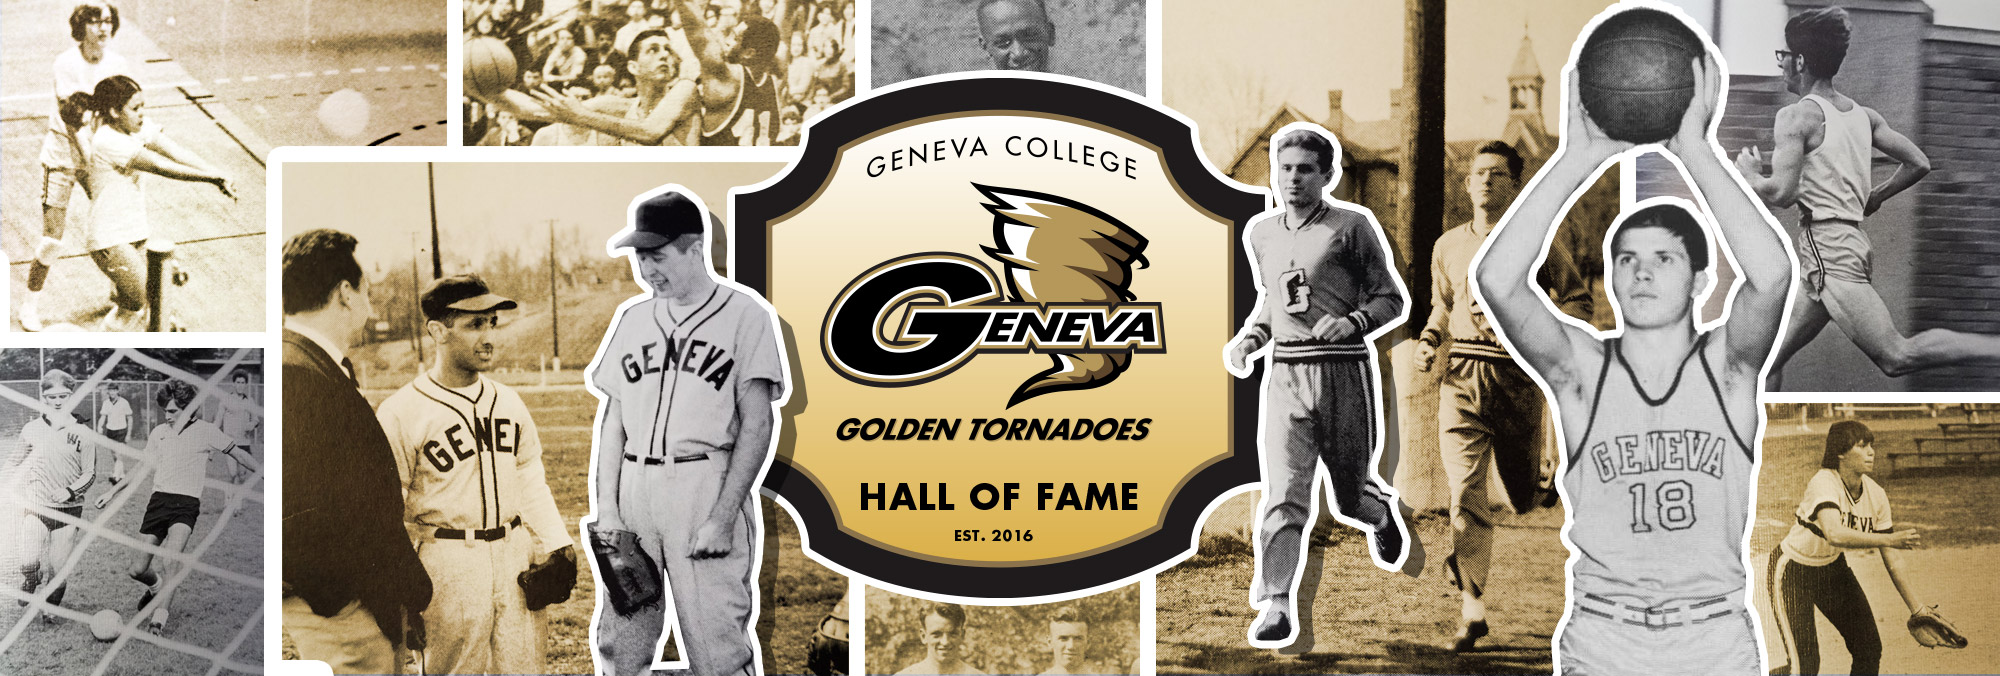 Geneva Hall of Fame